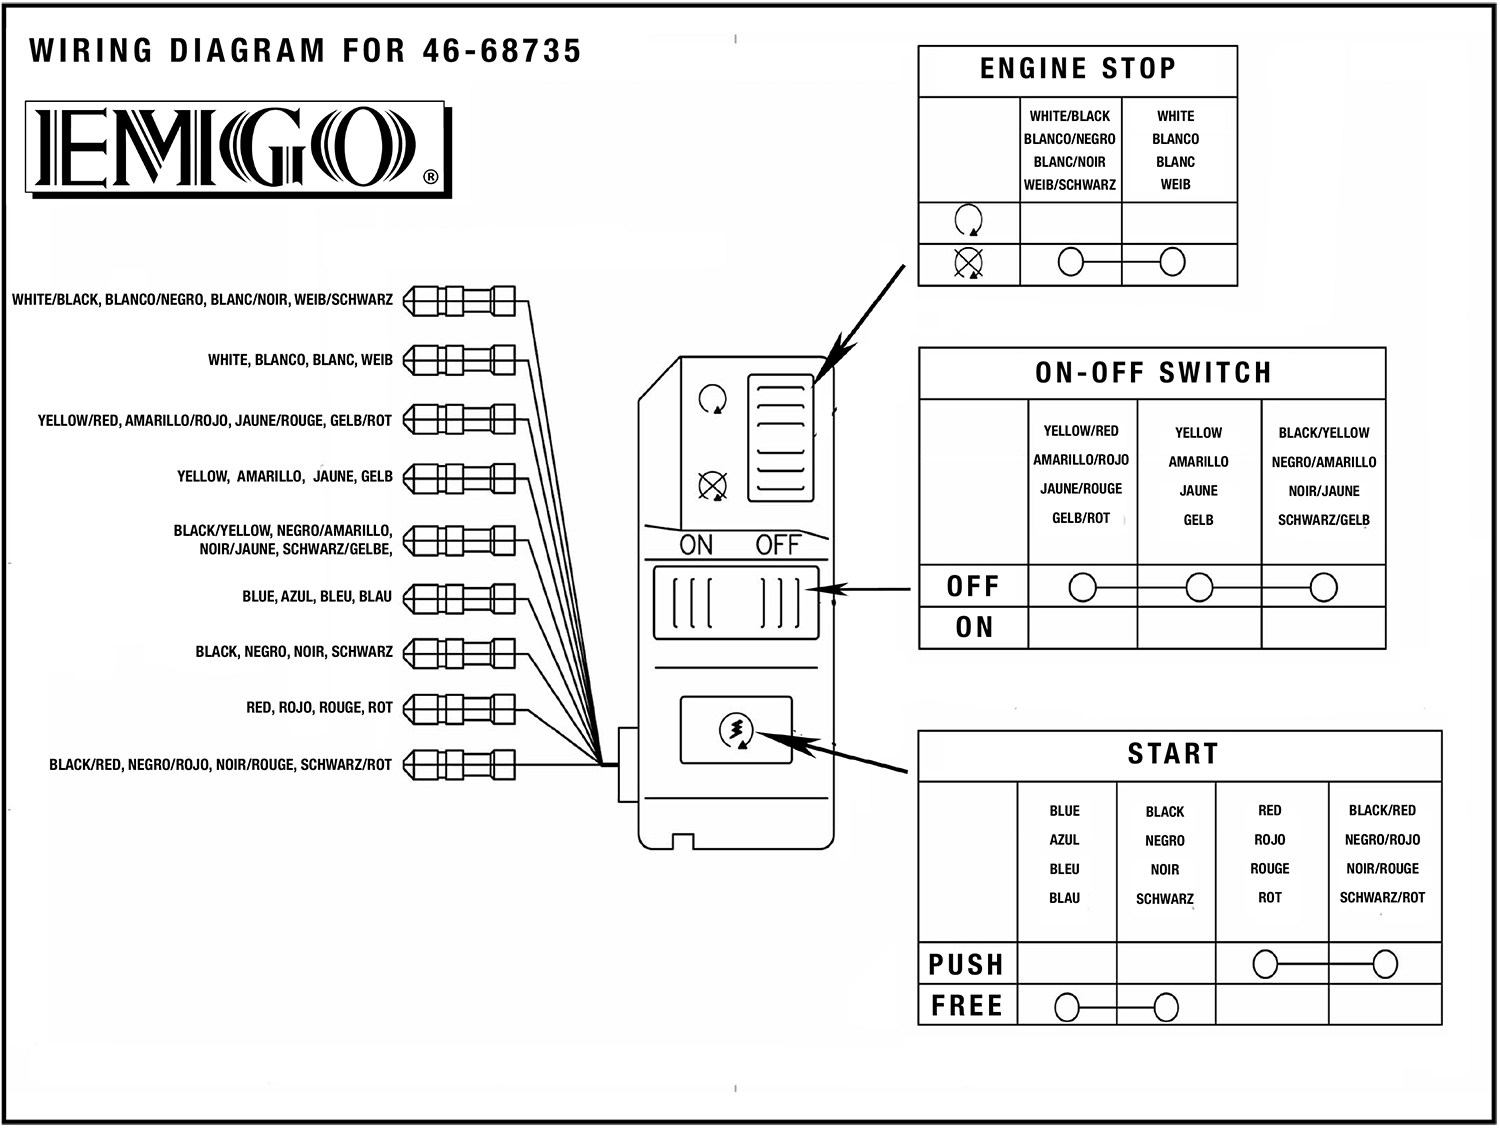 scooter ignition switch wiring diagram 2001 dodge durango trailer emgo universal handlebar multi right 46 68735